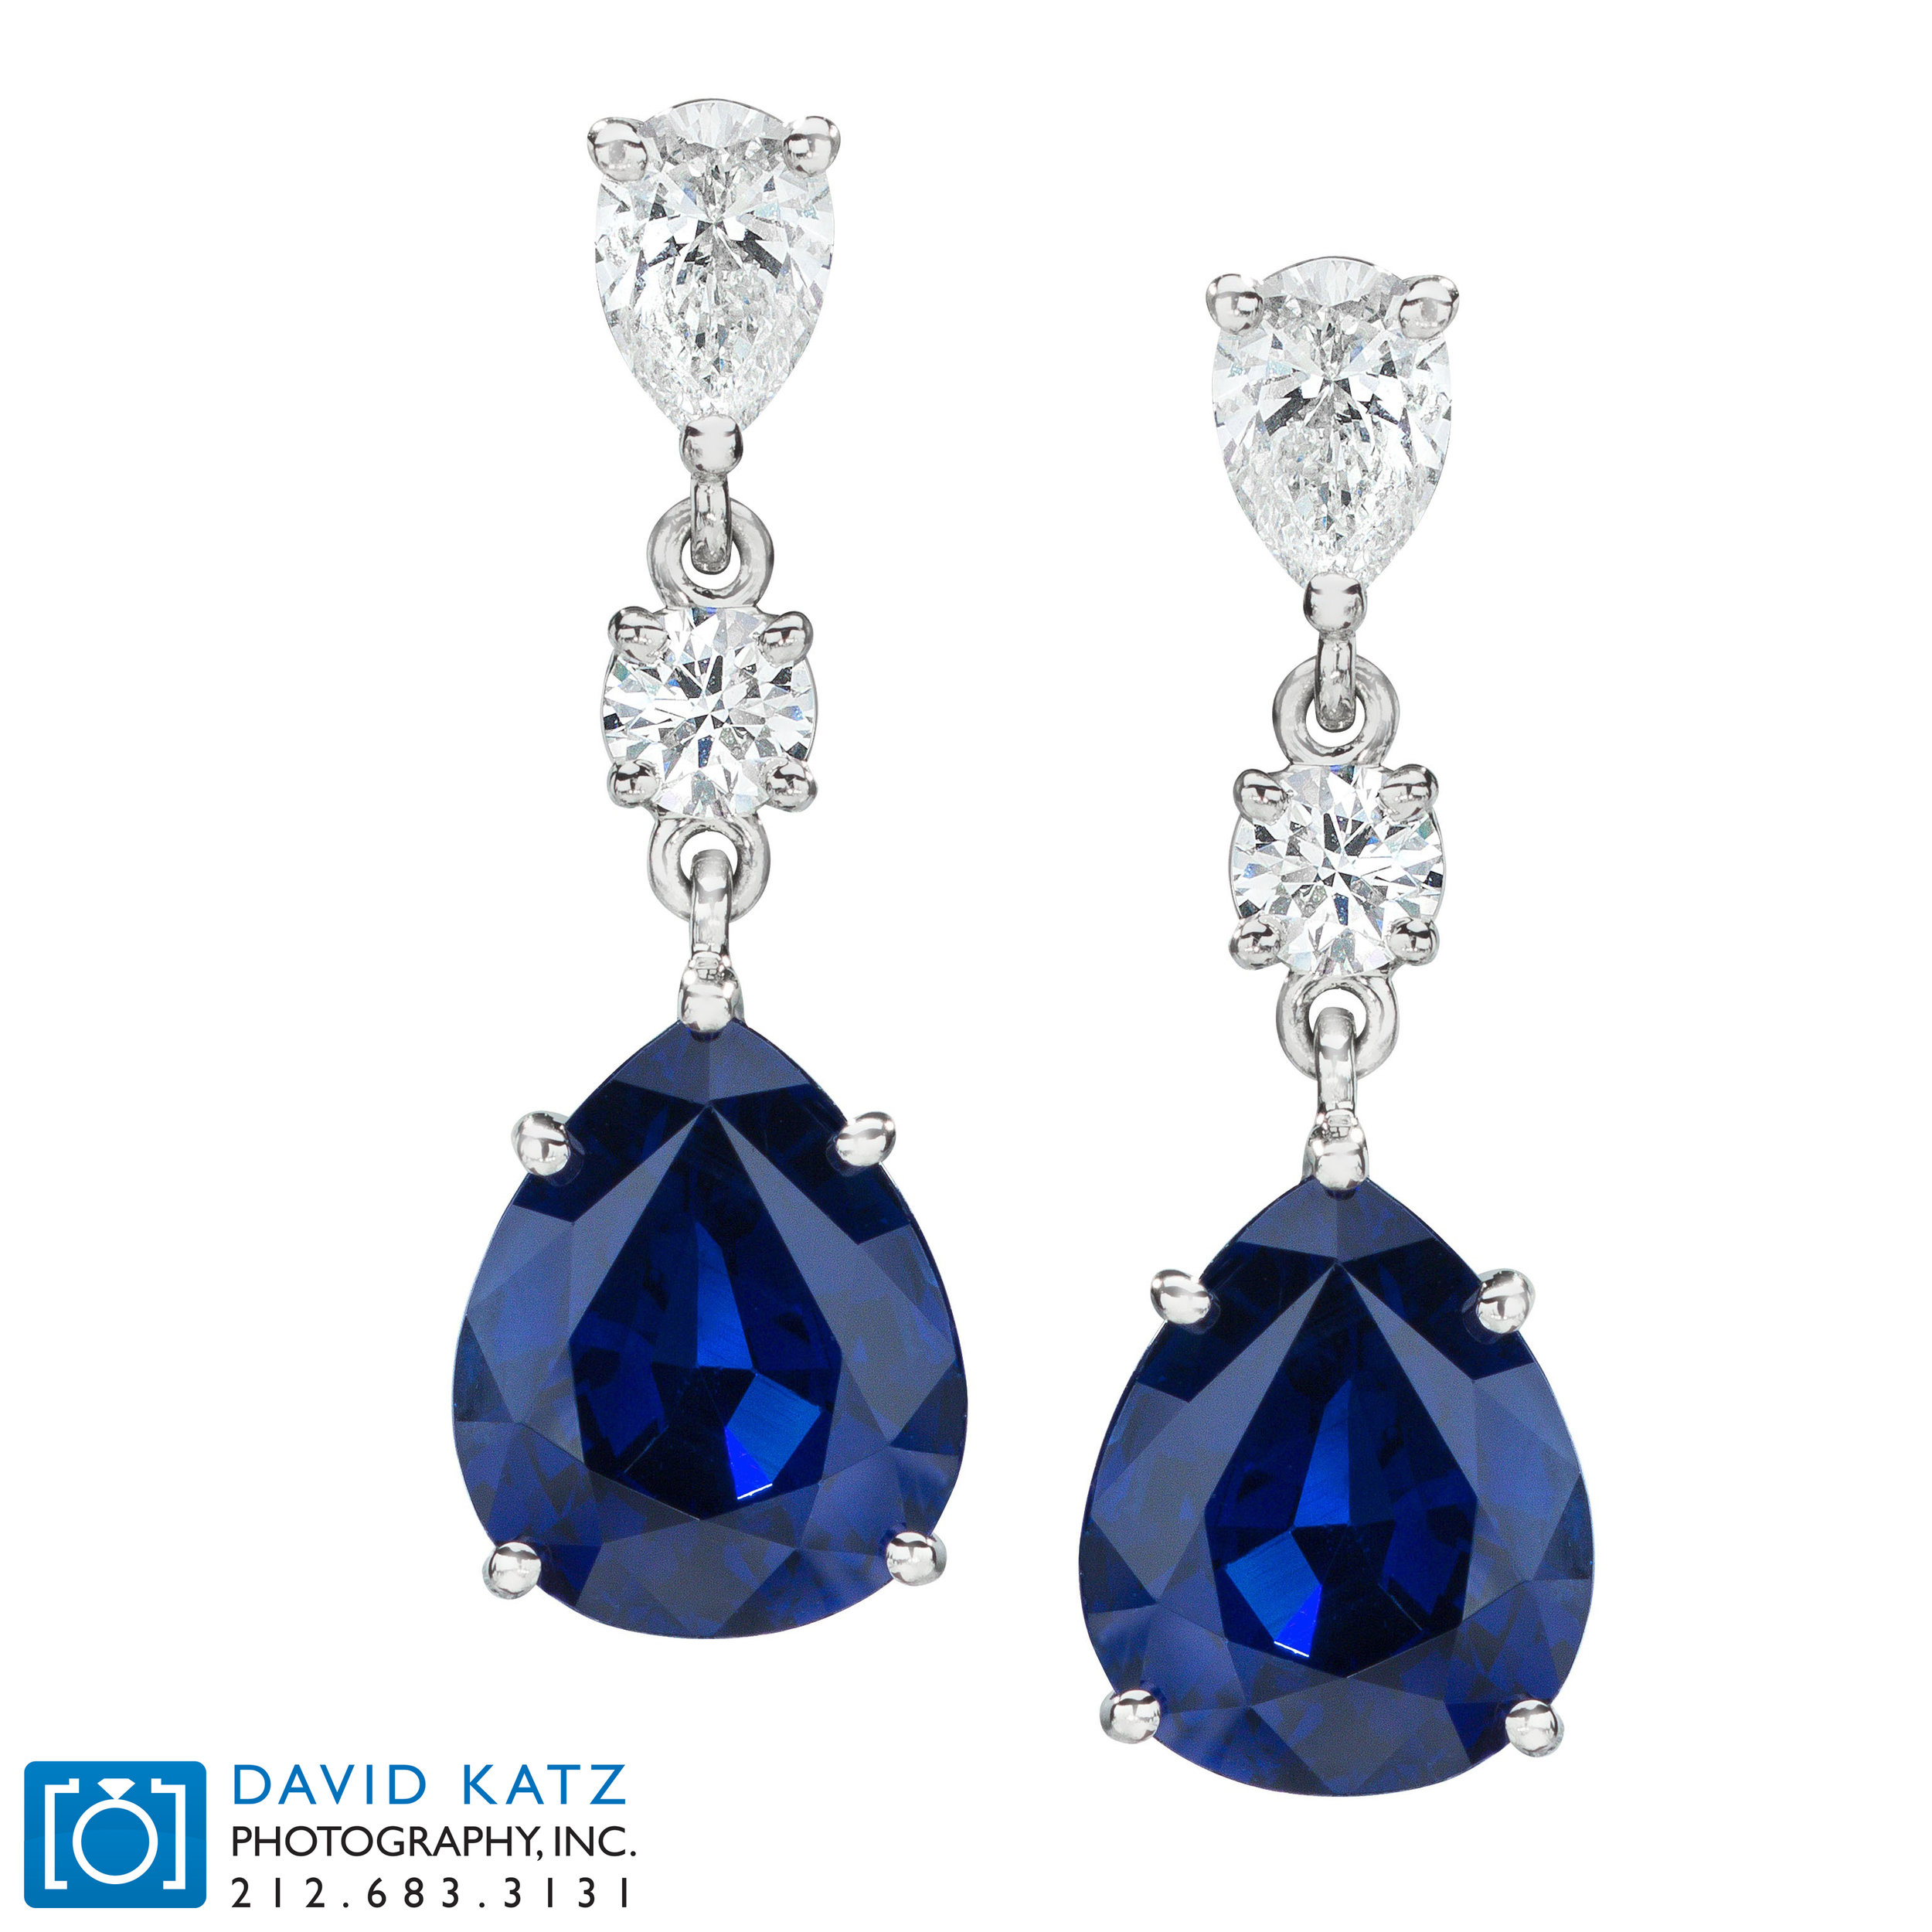 blue sapphire diamond earrings_NEWLOGO.jpg